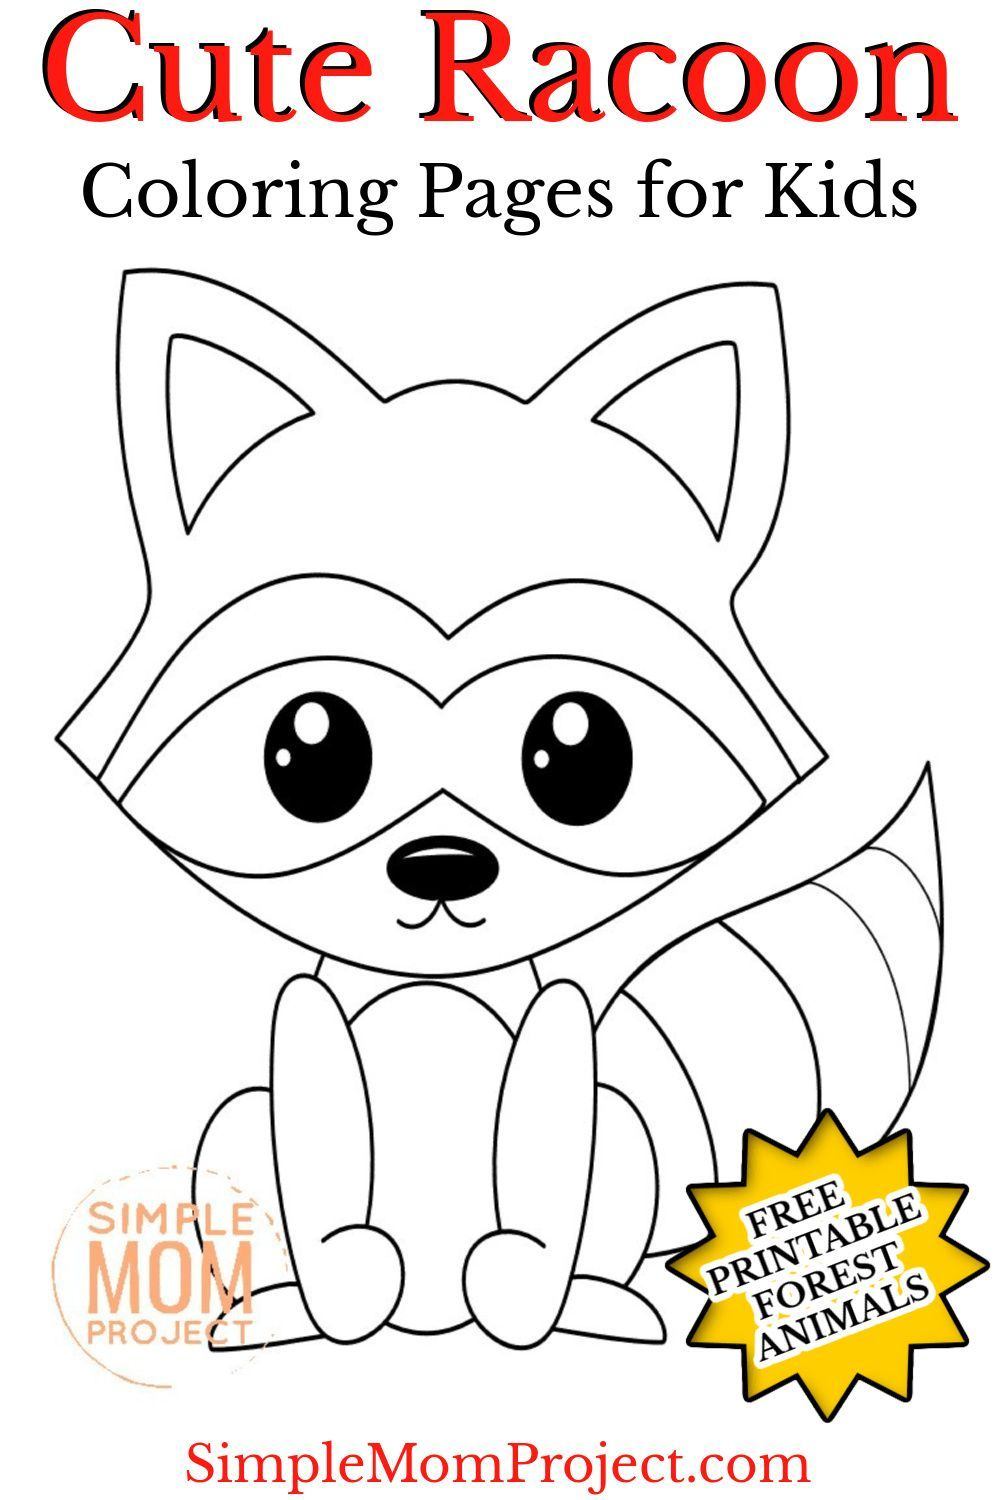 Bandit Face Raccoon Coloring Pages Raccoon Coloring Page And Kids Activity Sheet Honkingdonke Deer Coloring Pages Cartoon Coloring Pages Zoo Coloring Pages